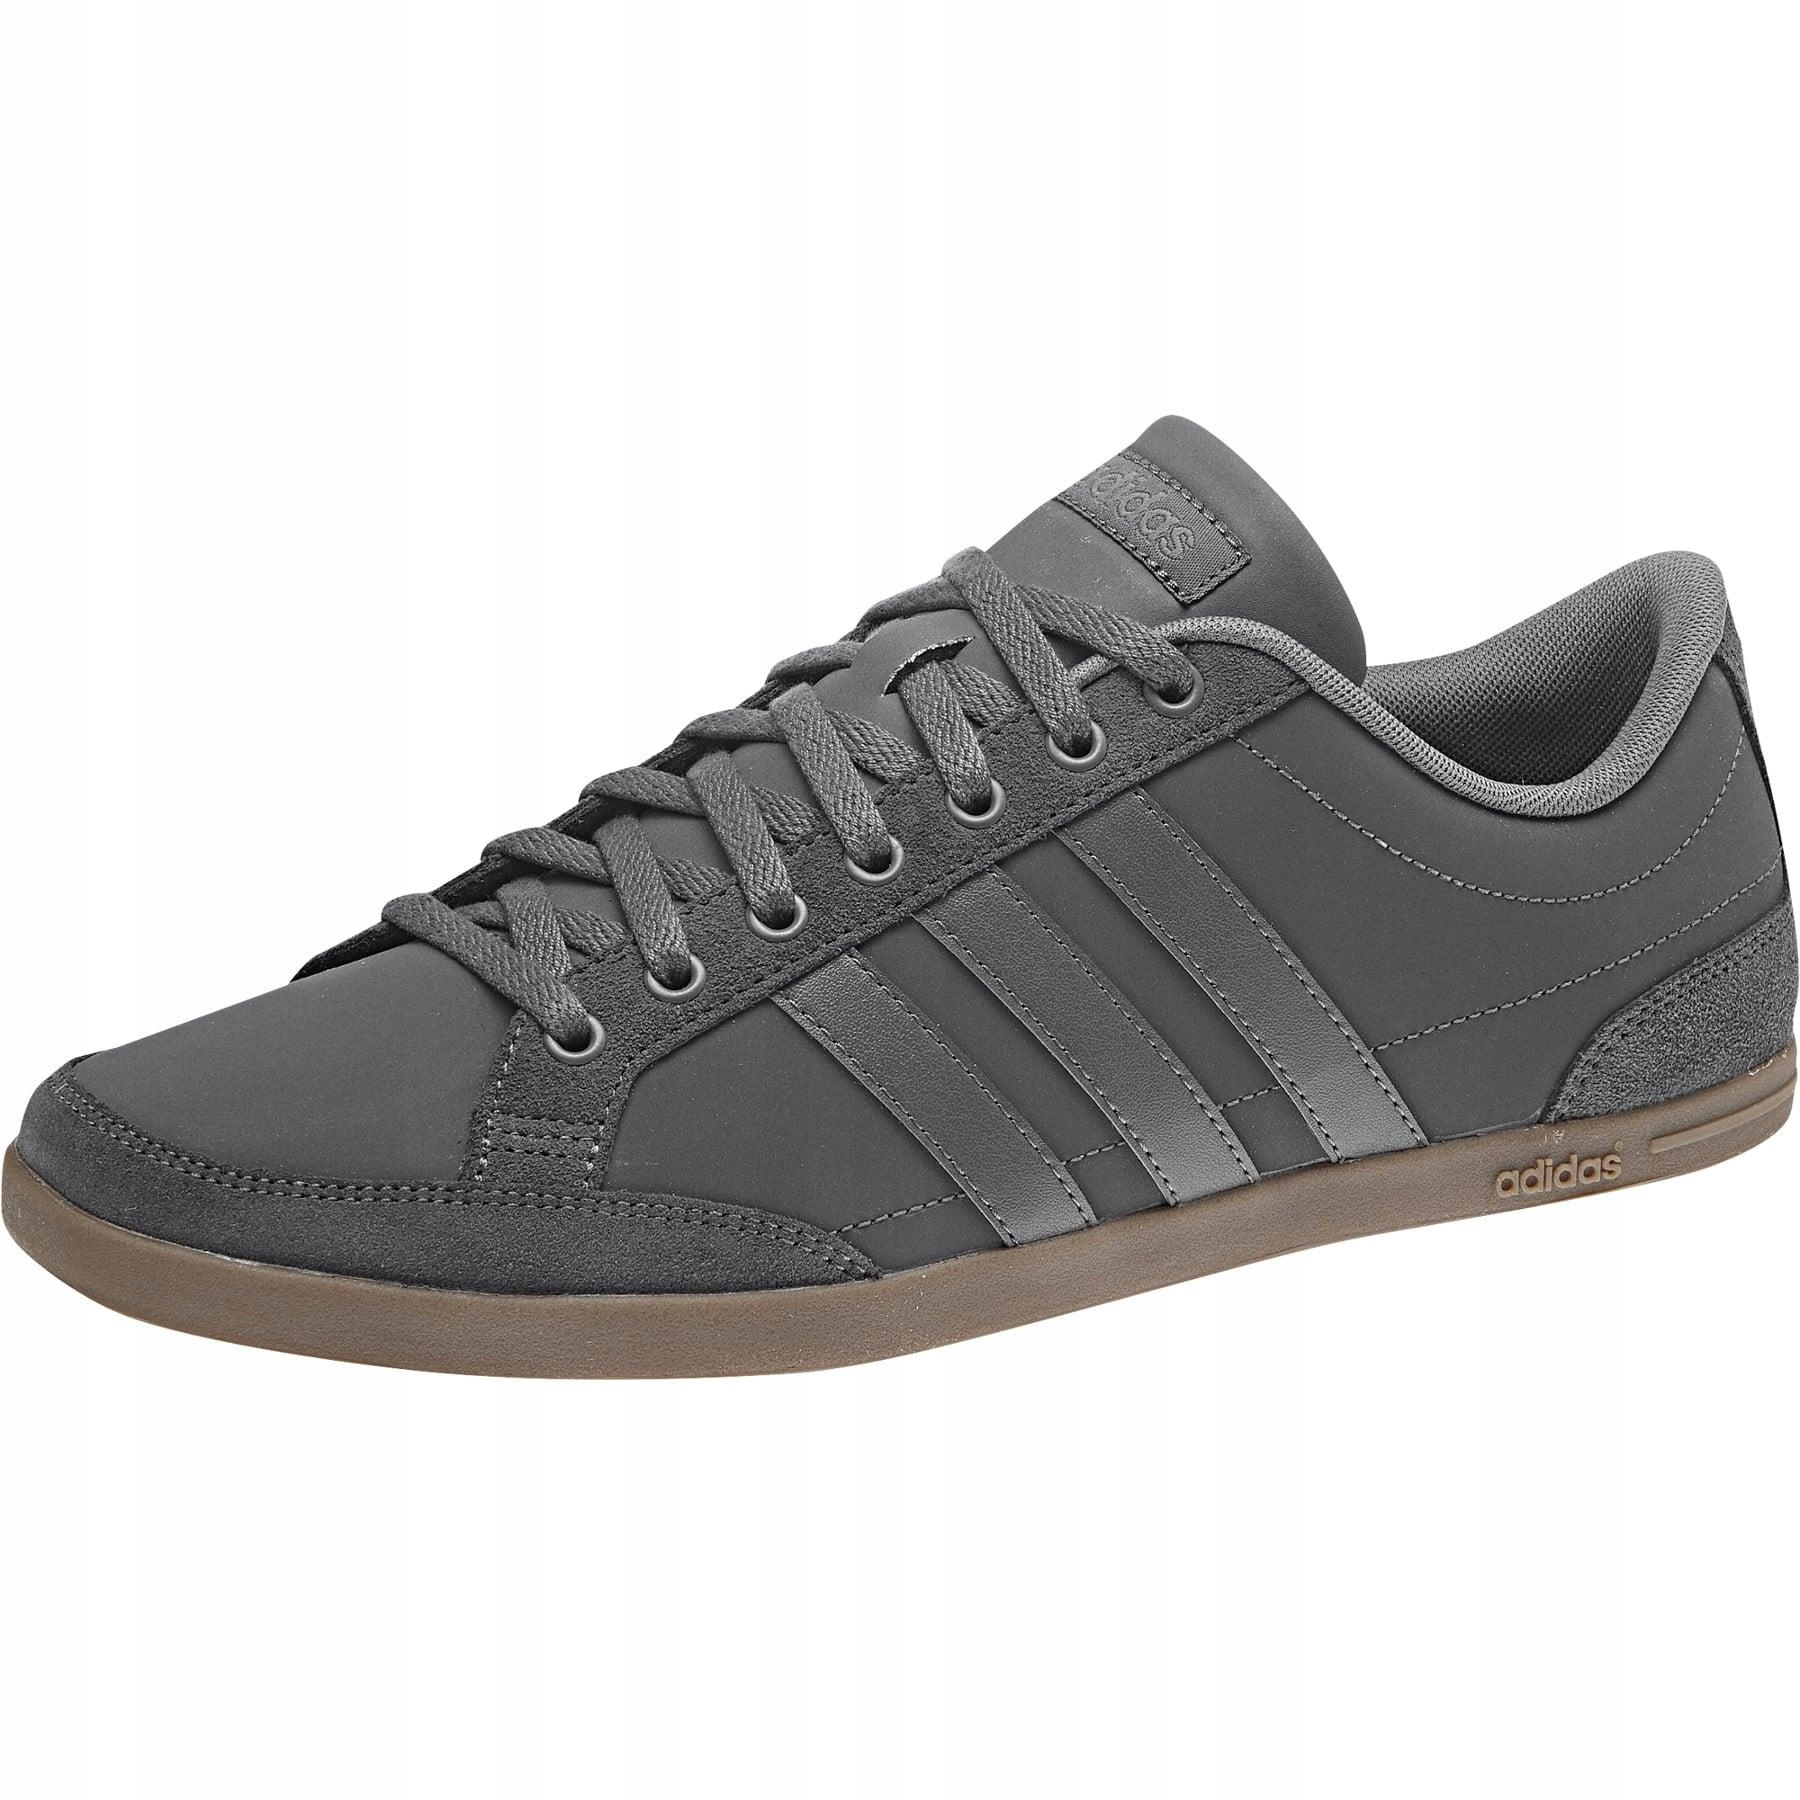 BUTY ADIDAS CAFLAIRE B43742 r 44 23 7645260109